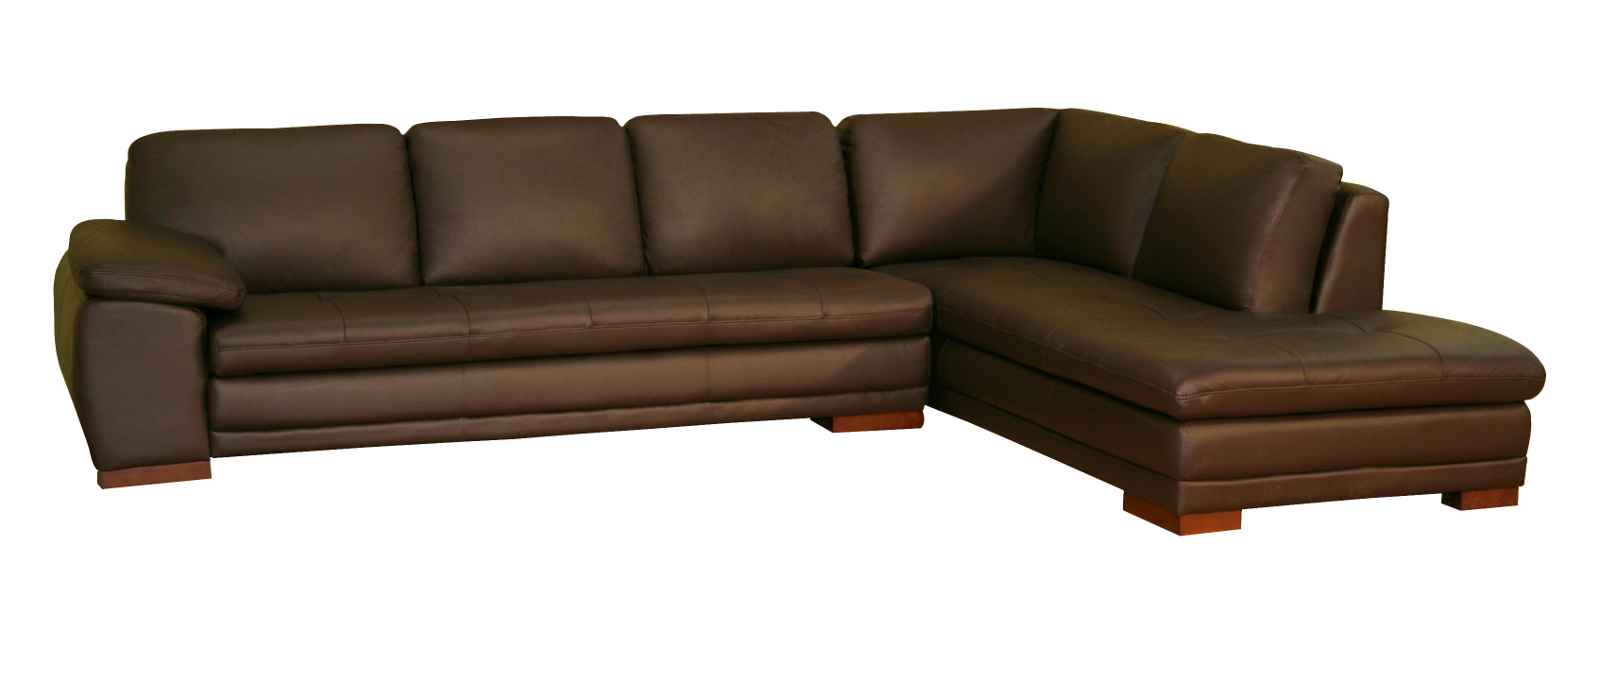 Couches You Sink Into Brown Leather Sectional Sofa | Feel The Home